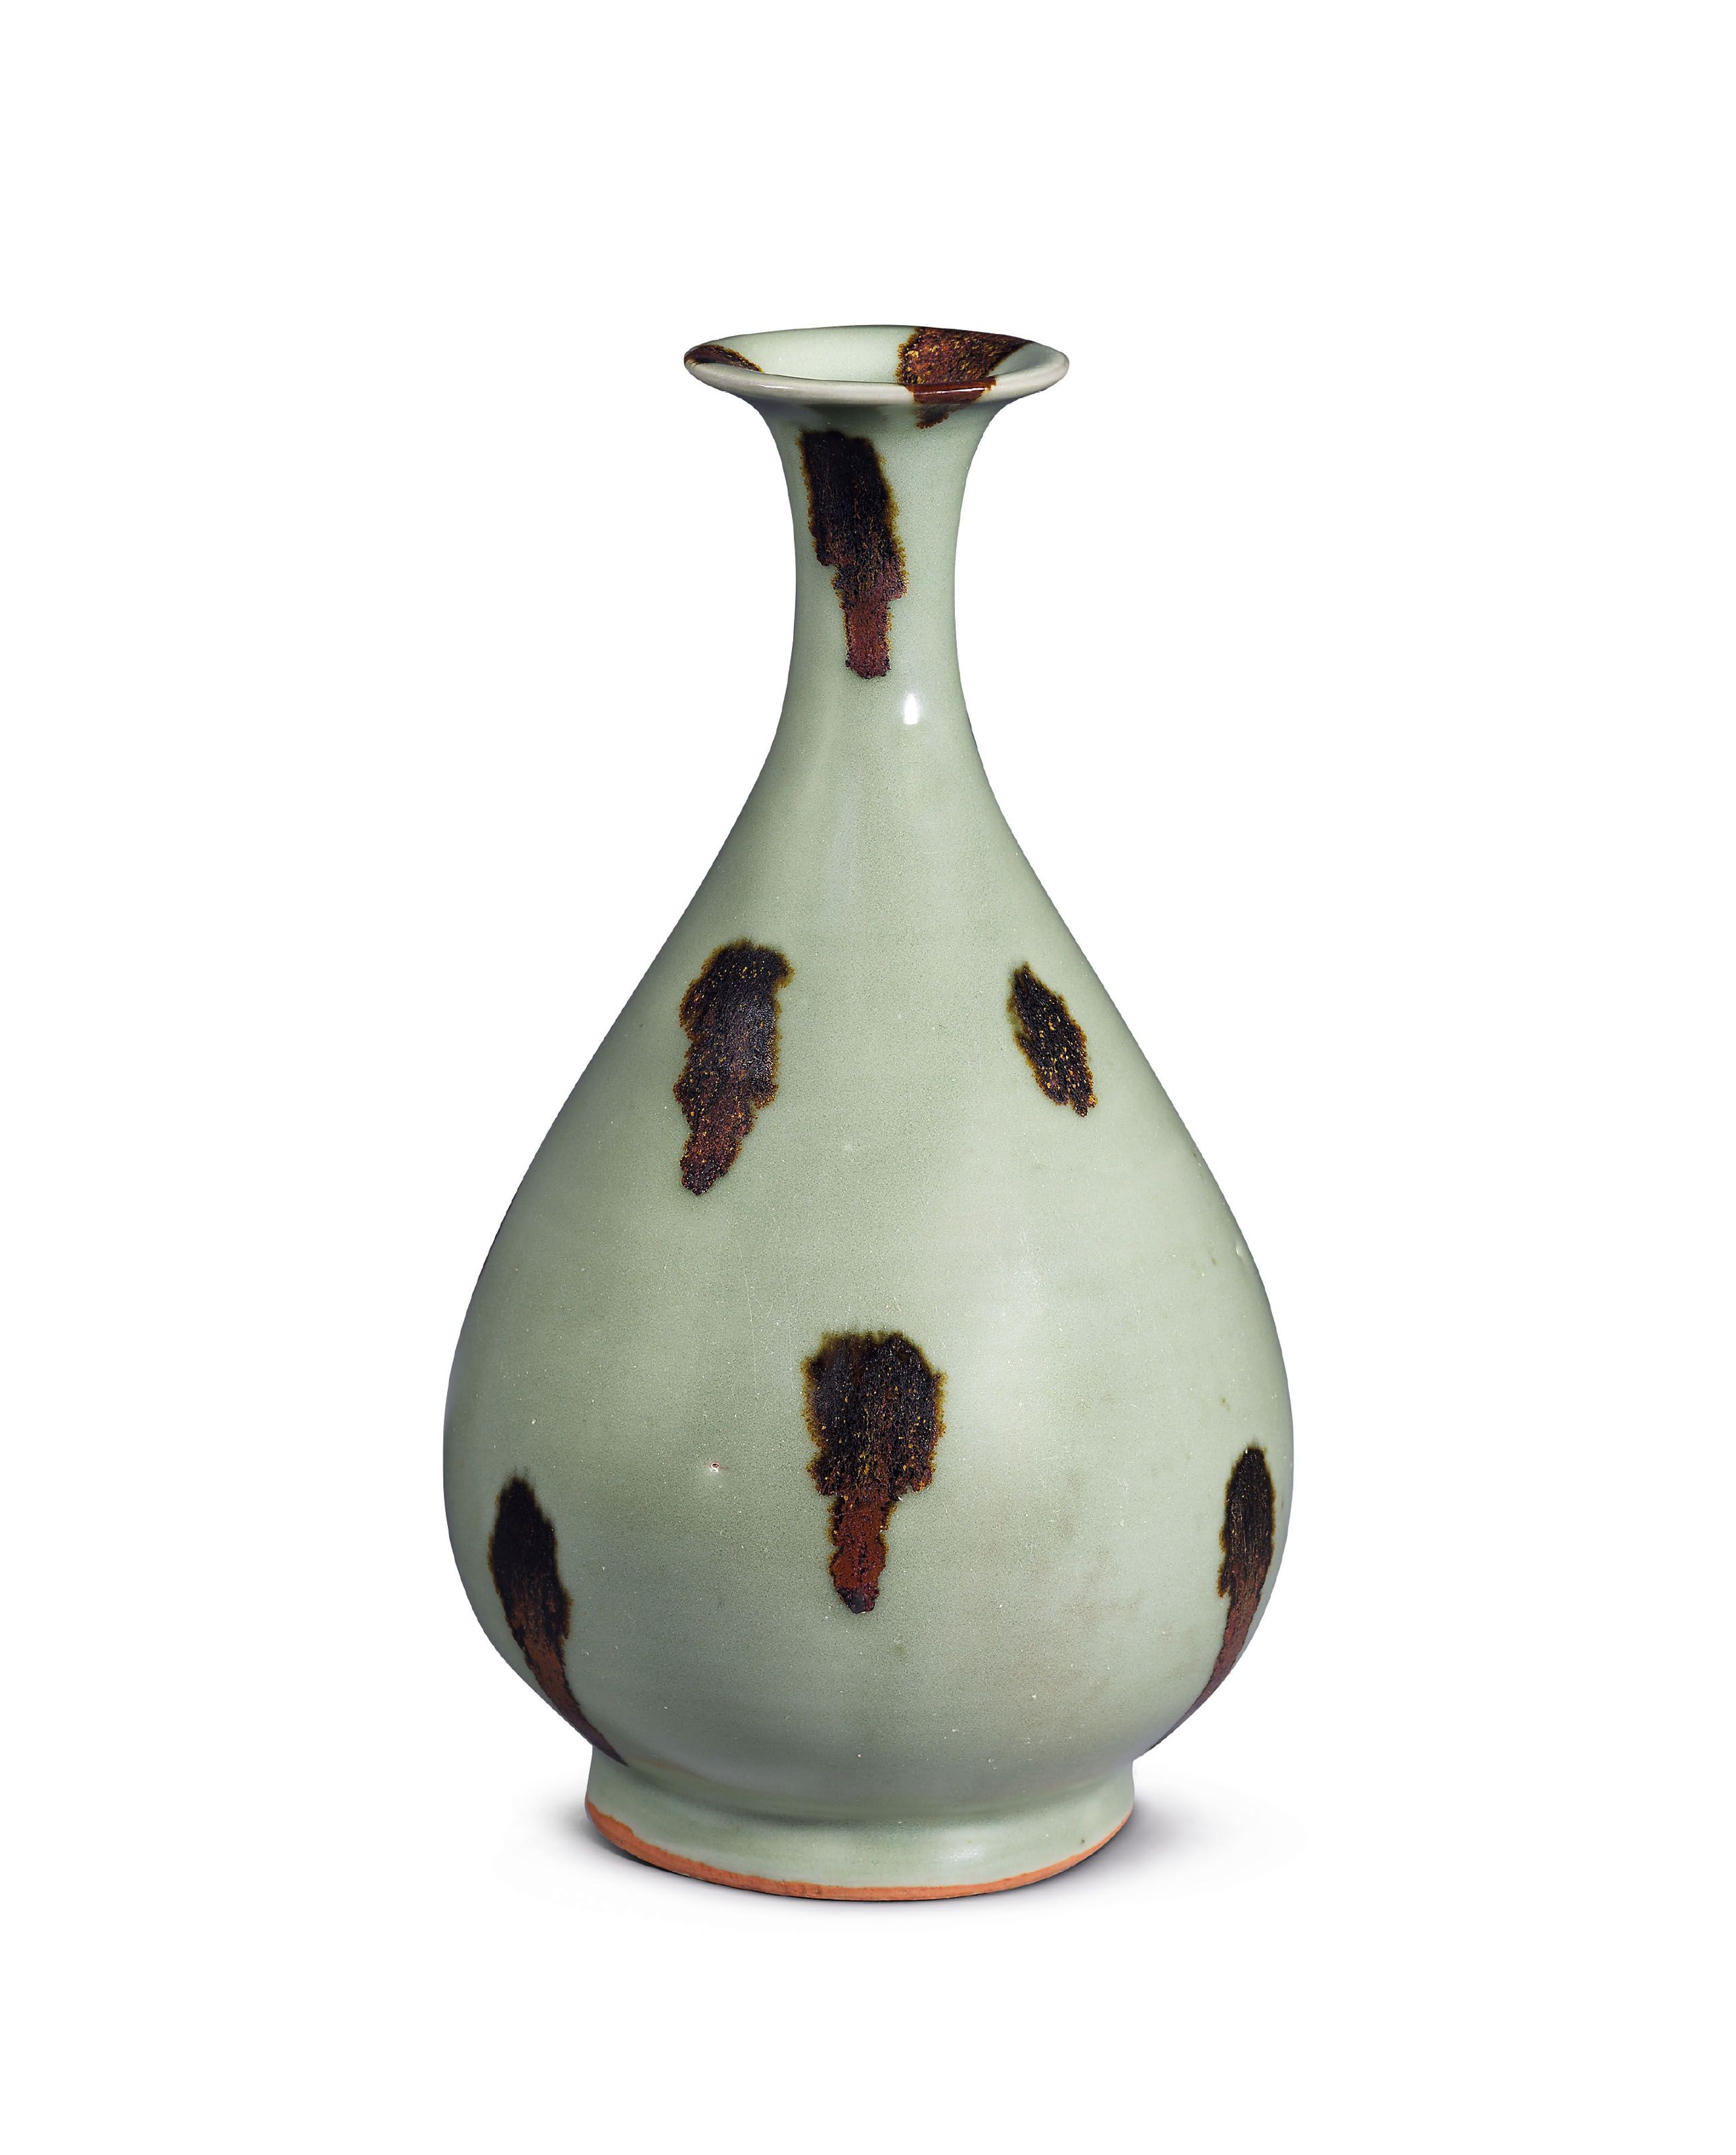 A Very Rare Longquan Celadon Russet Splashed Vase Yuhuchunping Yuan Dynasty 1279 1368 13th Century All Other C Celadon Chinese Ceramics Chinese Pottery